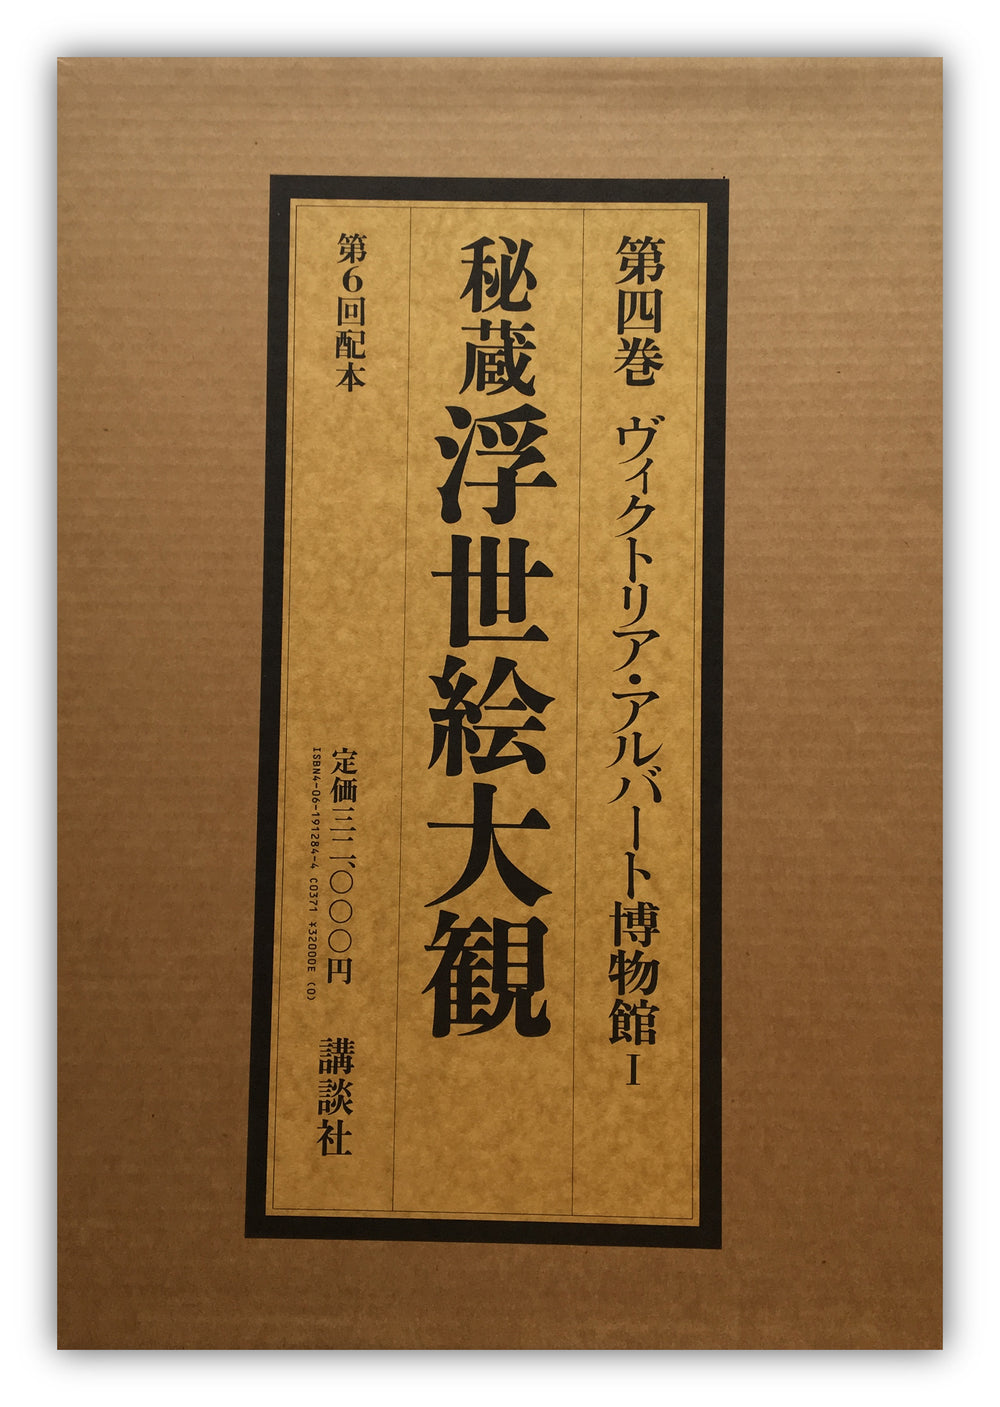 UKIYO-E MASTERPIECES IN EUROPEAN COLLECTIONS VOL.4 - Kodansha Edition, 1988.